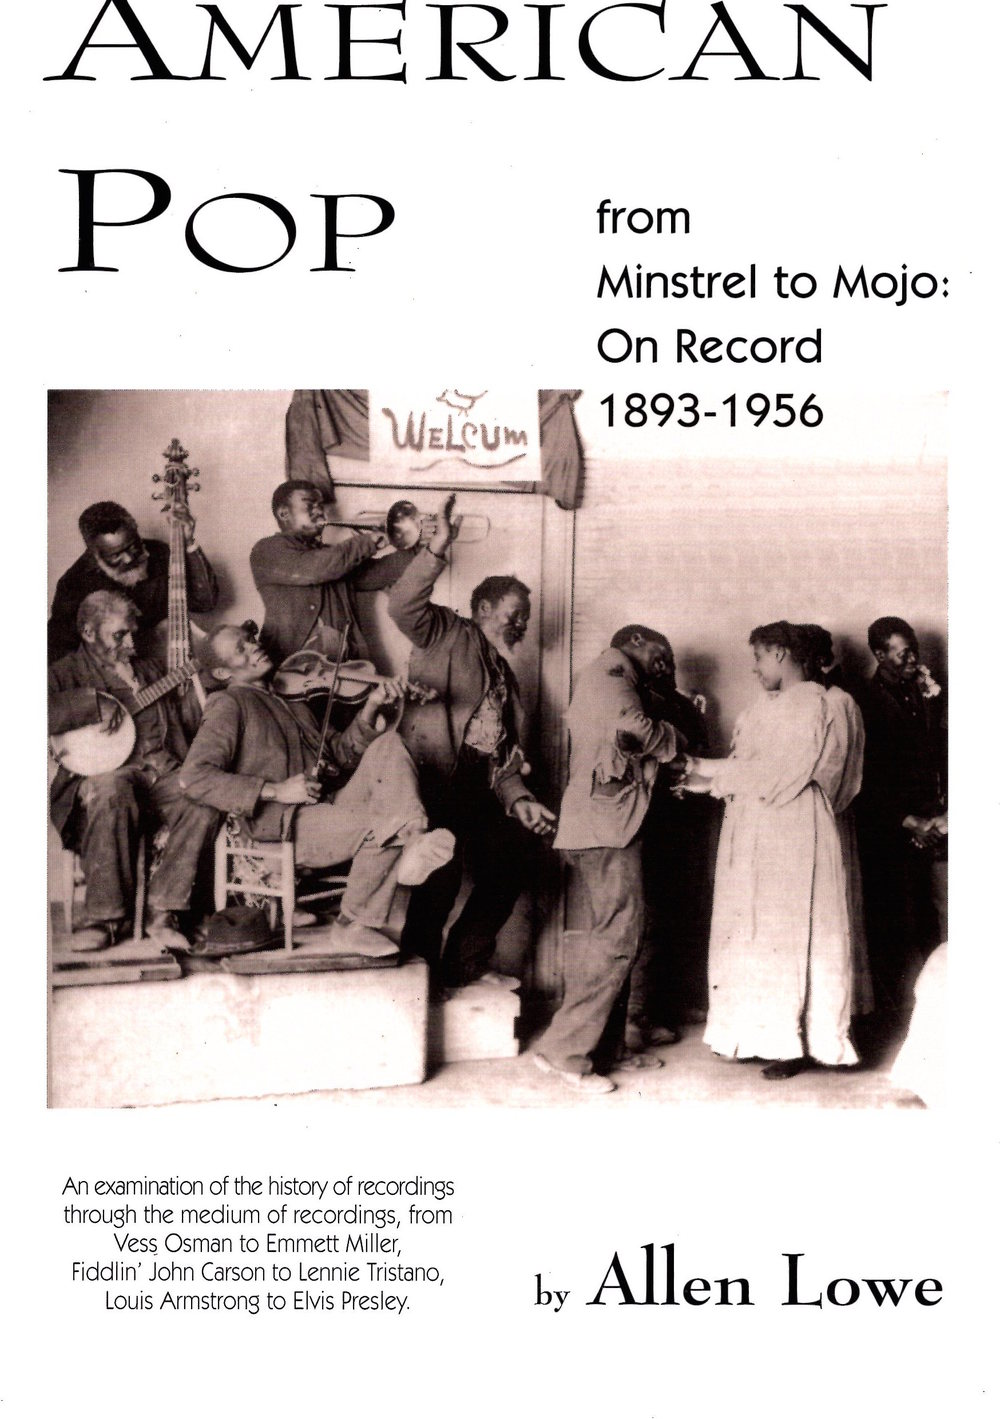 American Pop From Minstrel to Mojo: On Record 1893-1956